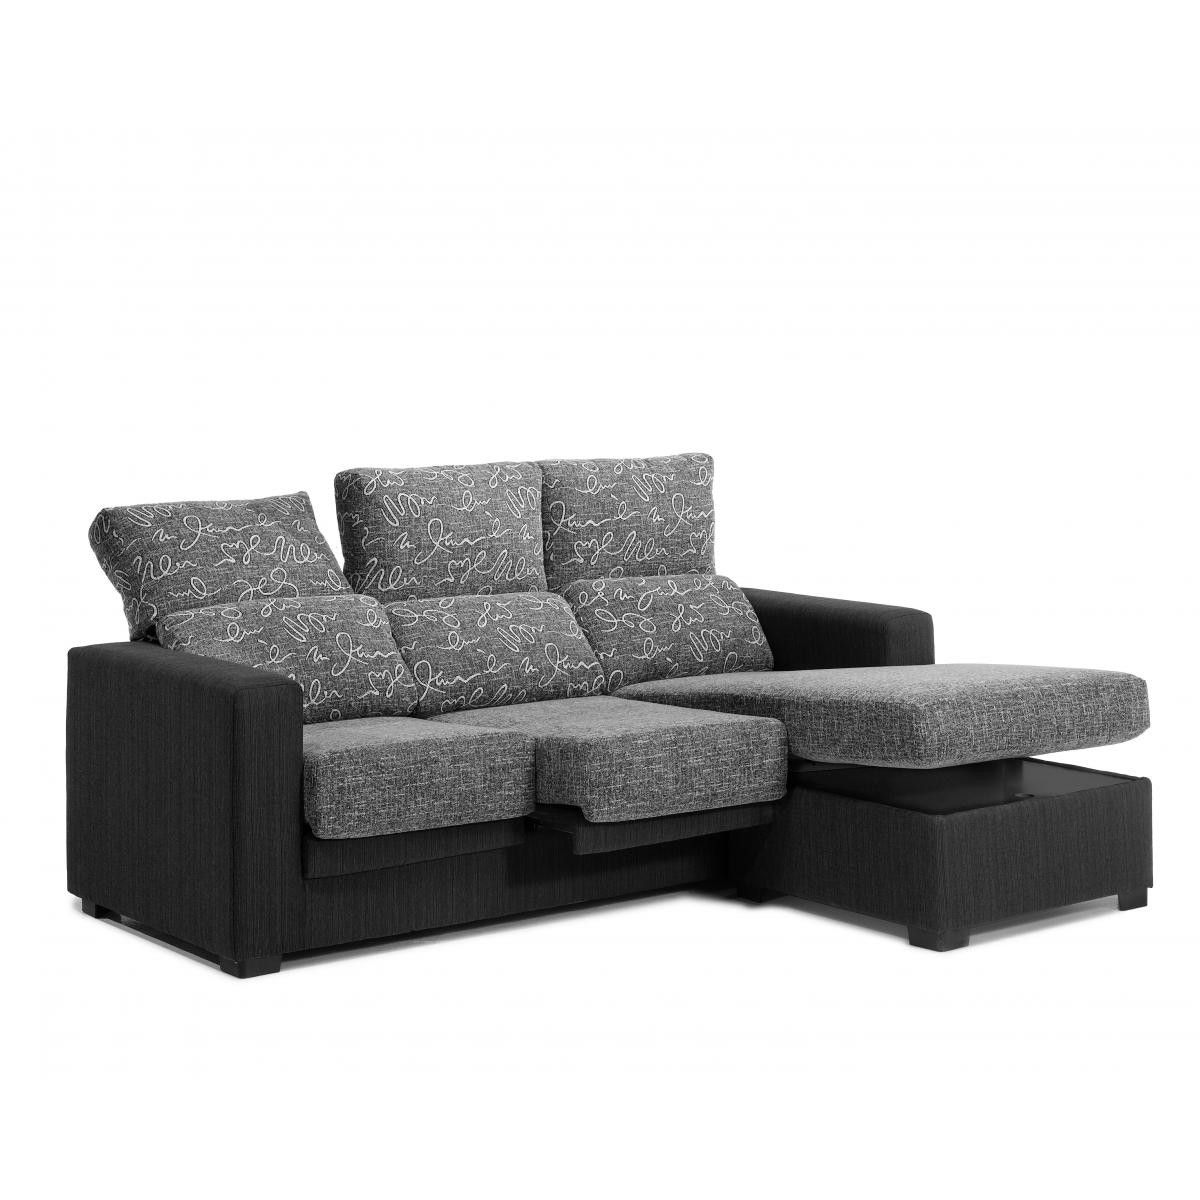 Chaise longue sane en conforama 399 euros decoraci n sal n pinterest chaise longue chaise - Muebles conforama madrid ...